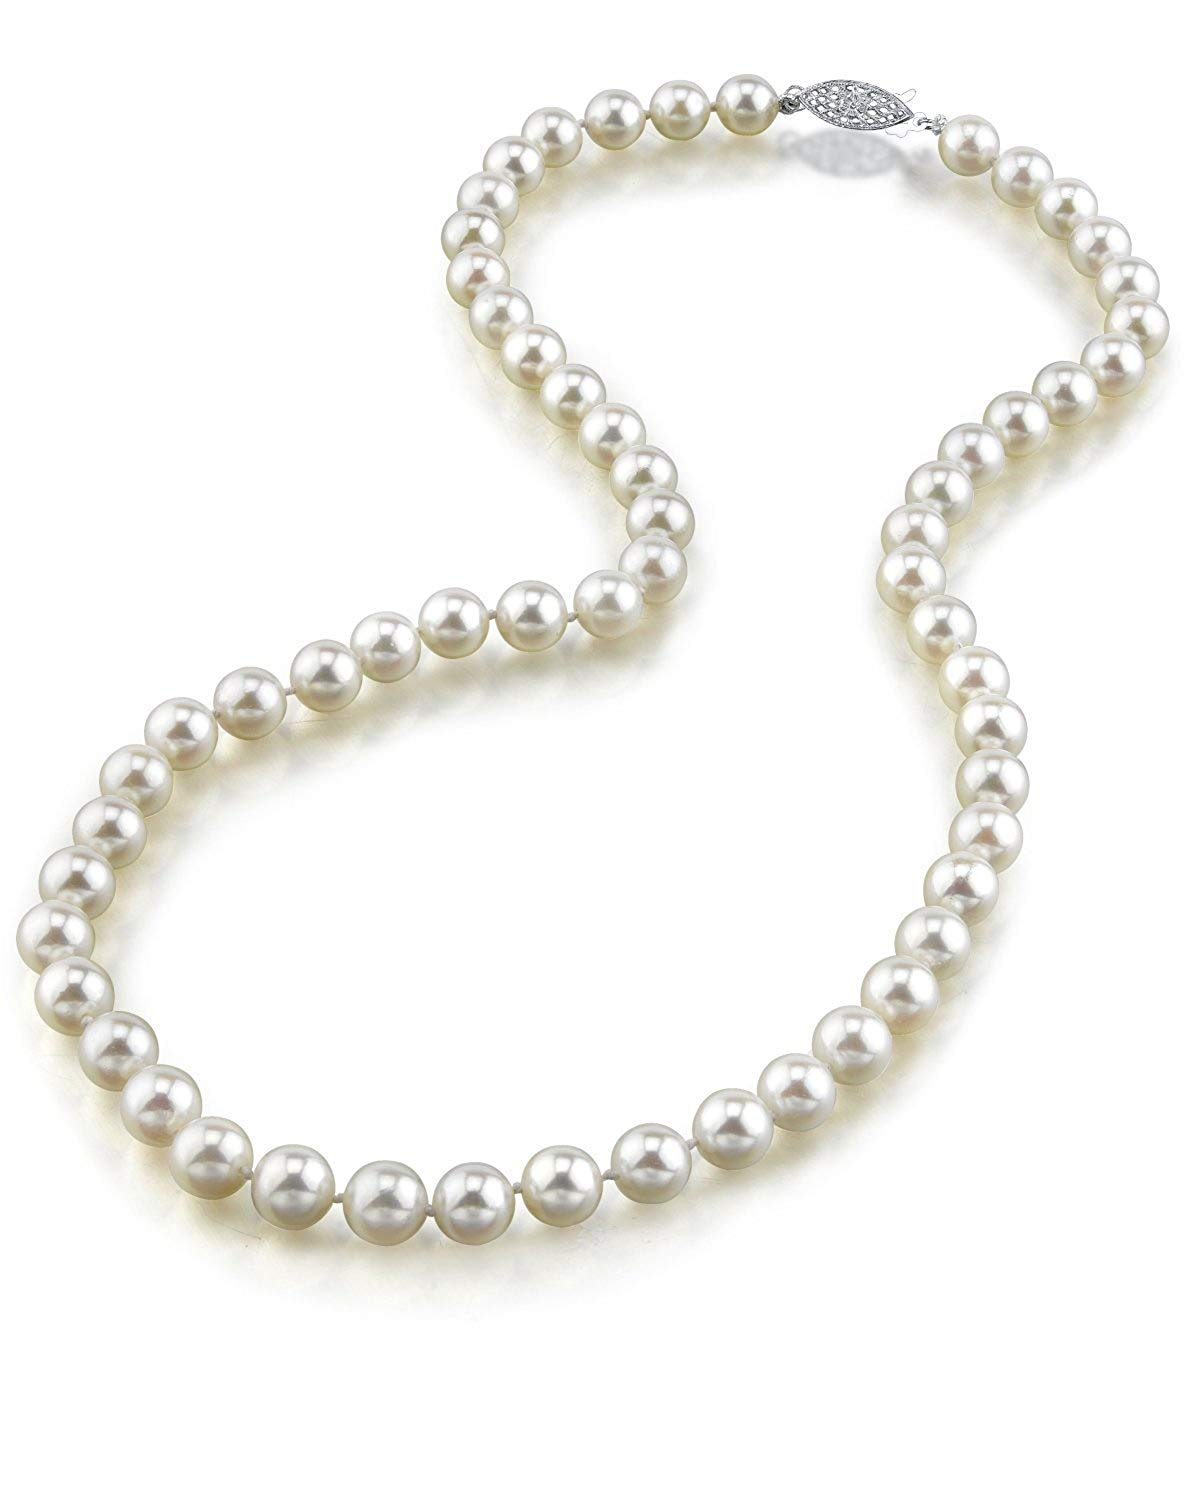 14K Gold 6.5-7.0mm Japanese Akoya Saltwater White Cultured Pearl Necklace - AA+ Quality